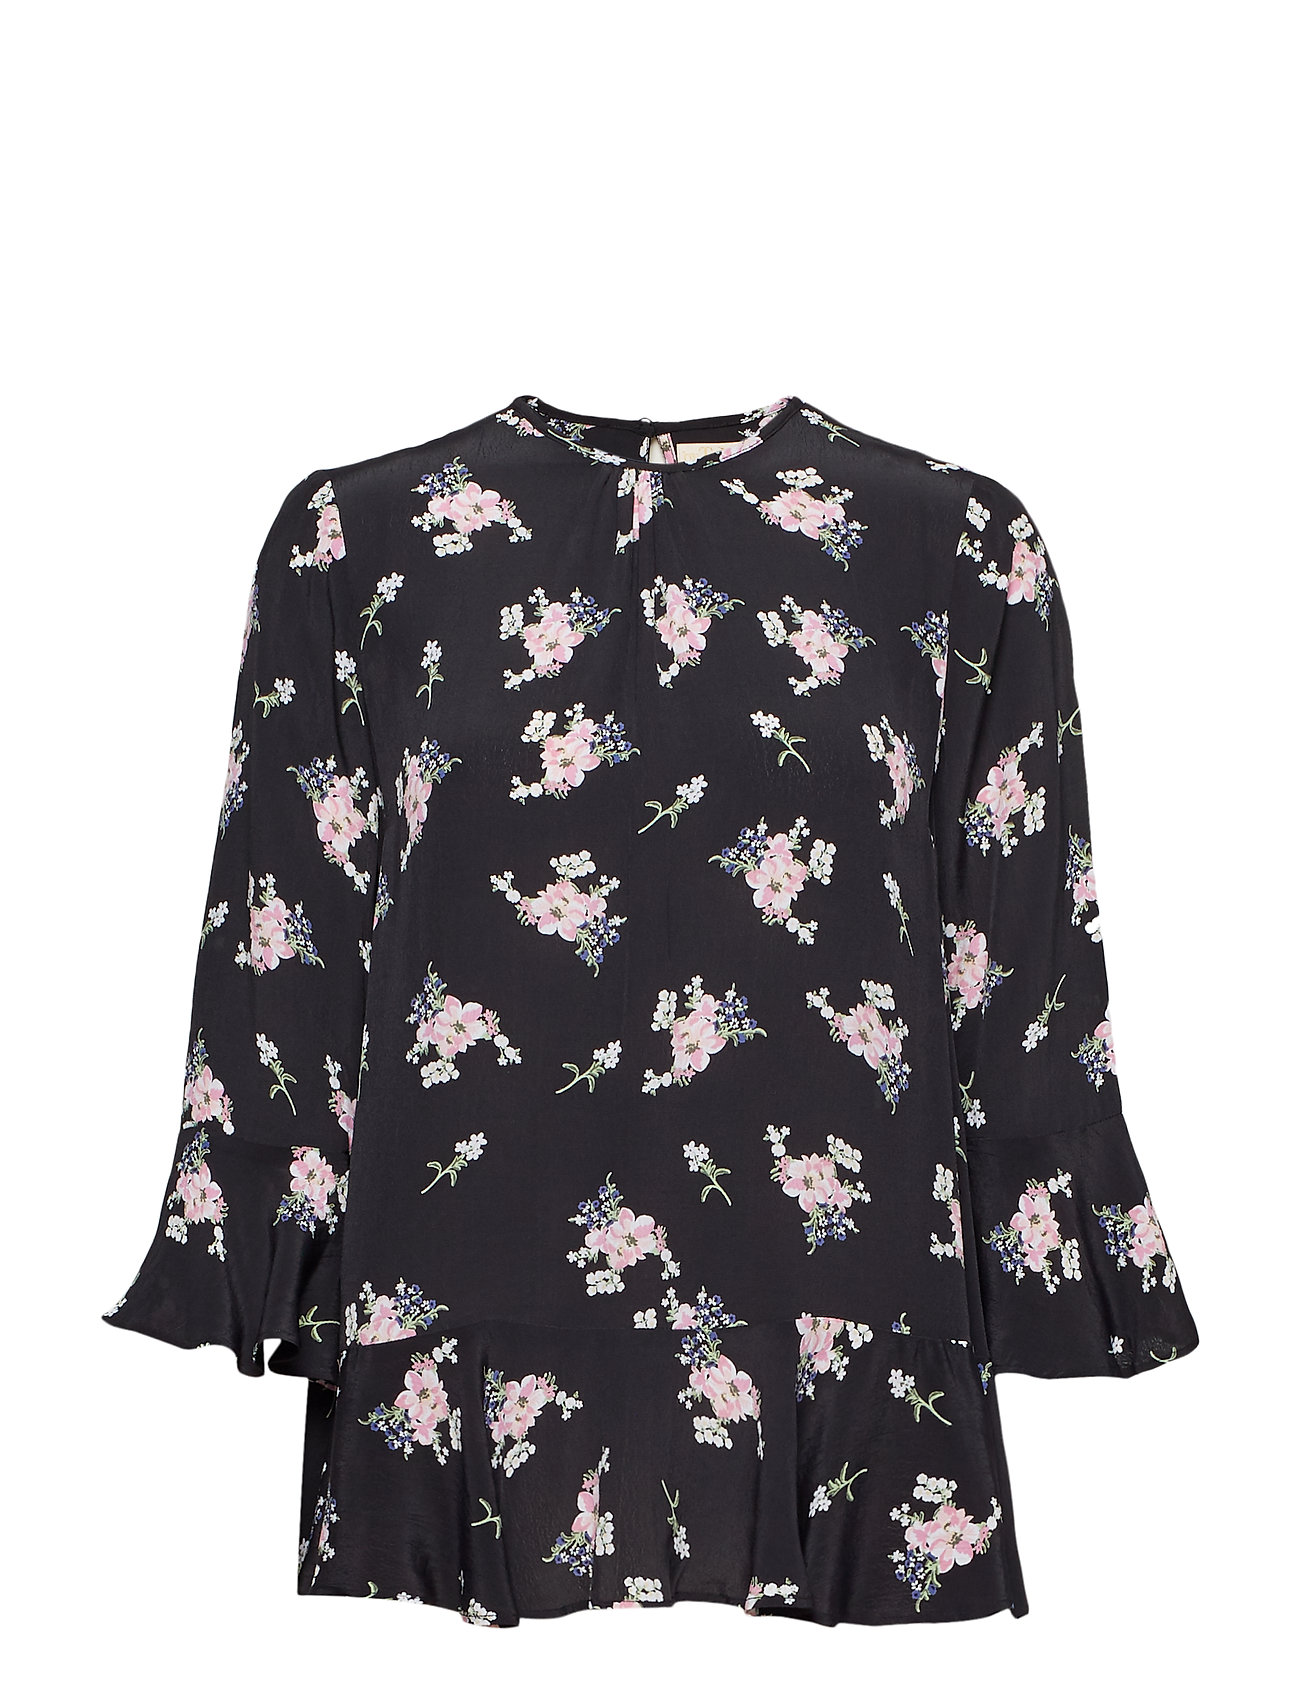 Flared BouquetBy Topsmall Mo BouquetBy Flared Ti Flared Ti Mo Topsmall Ygfb7yvmI6